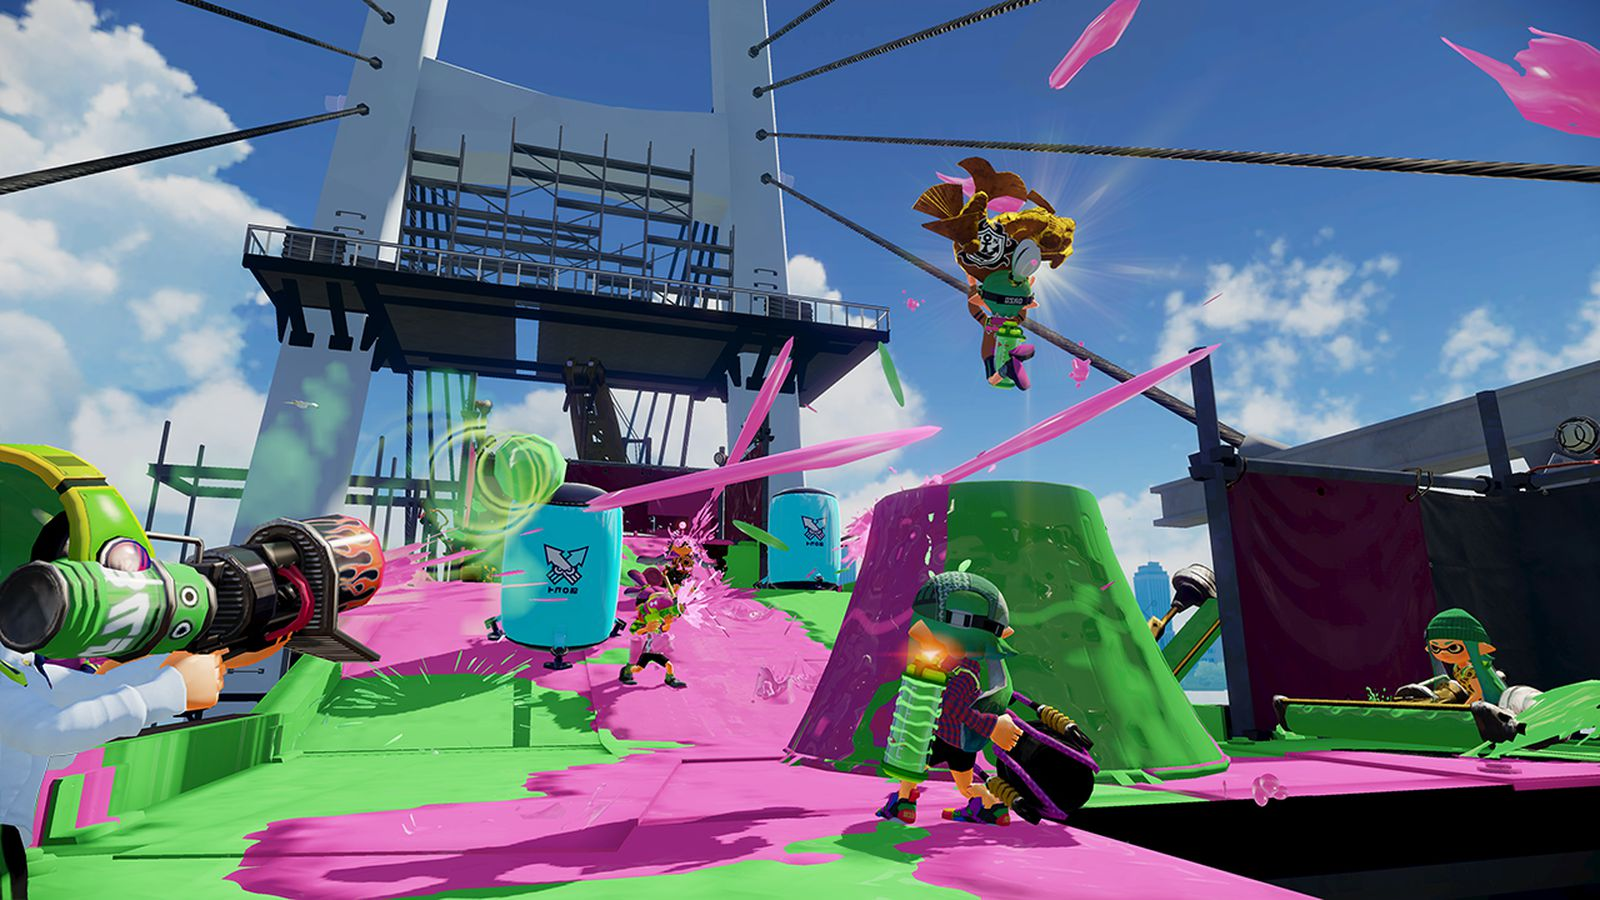 splatoon gets a new ranked battle mode this weekend